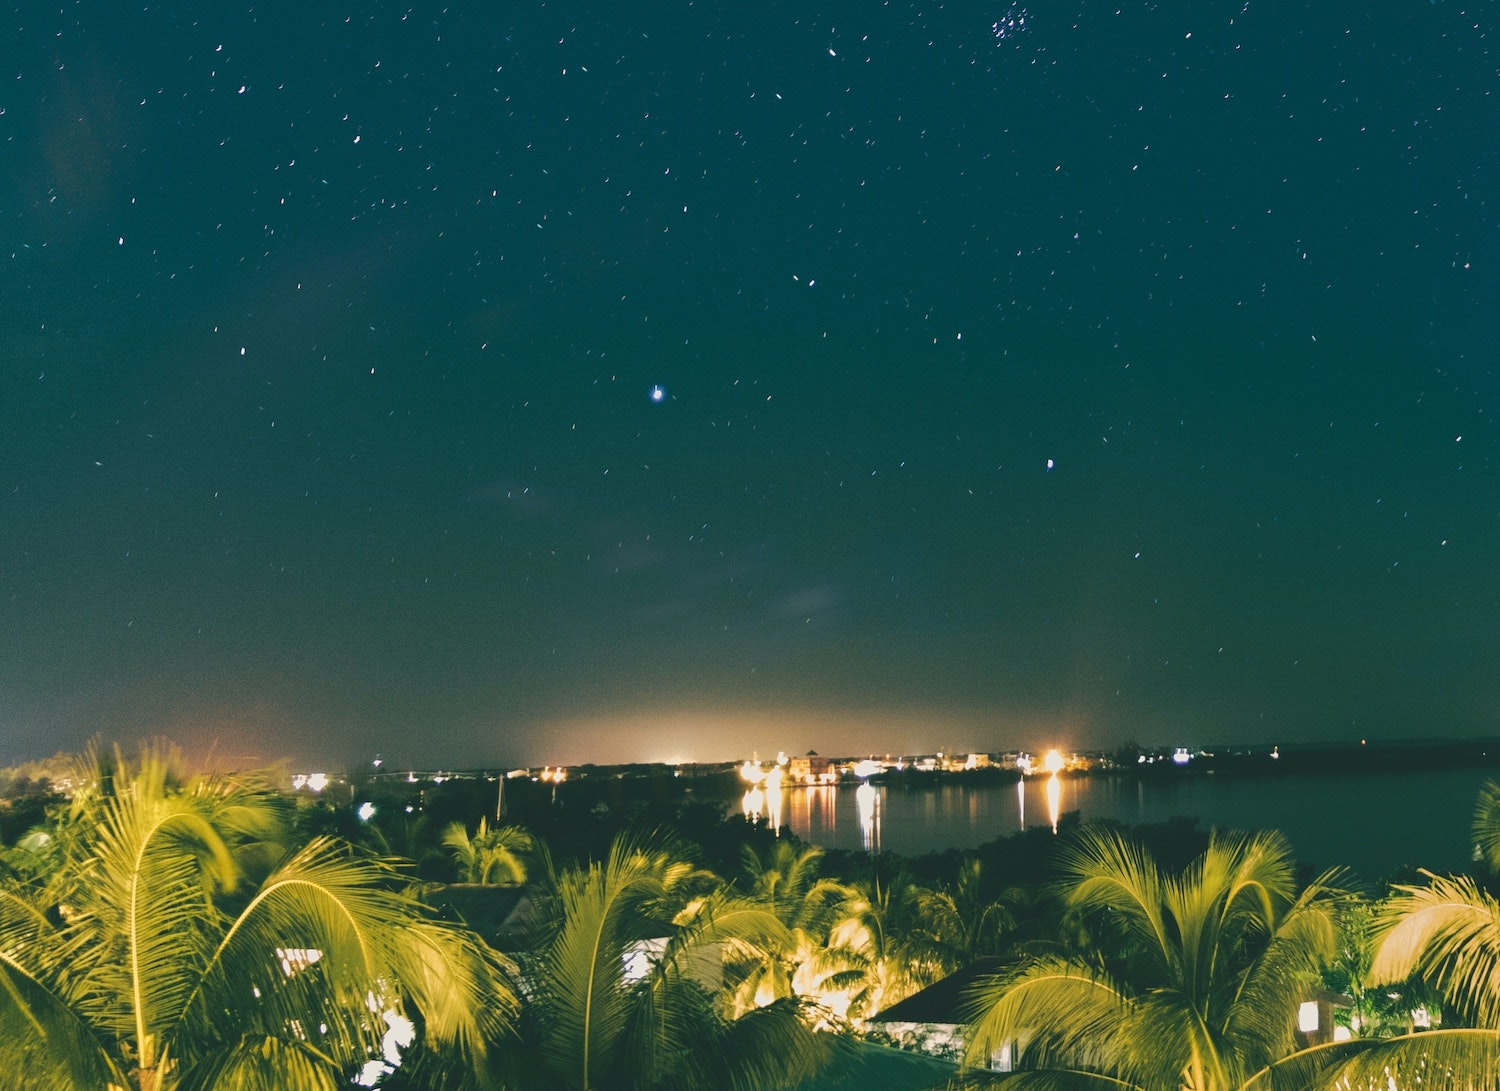 the star night sky in belize with city lights glowing and palm trees swaying